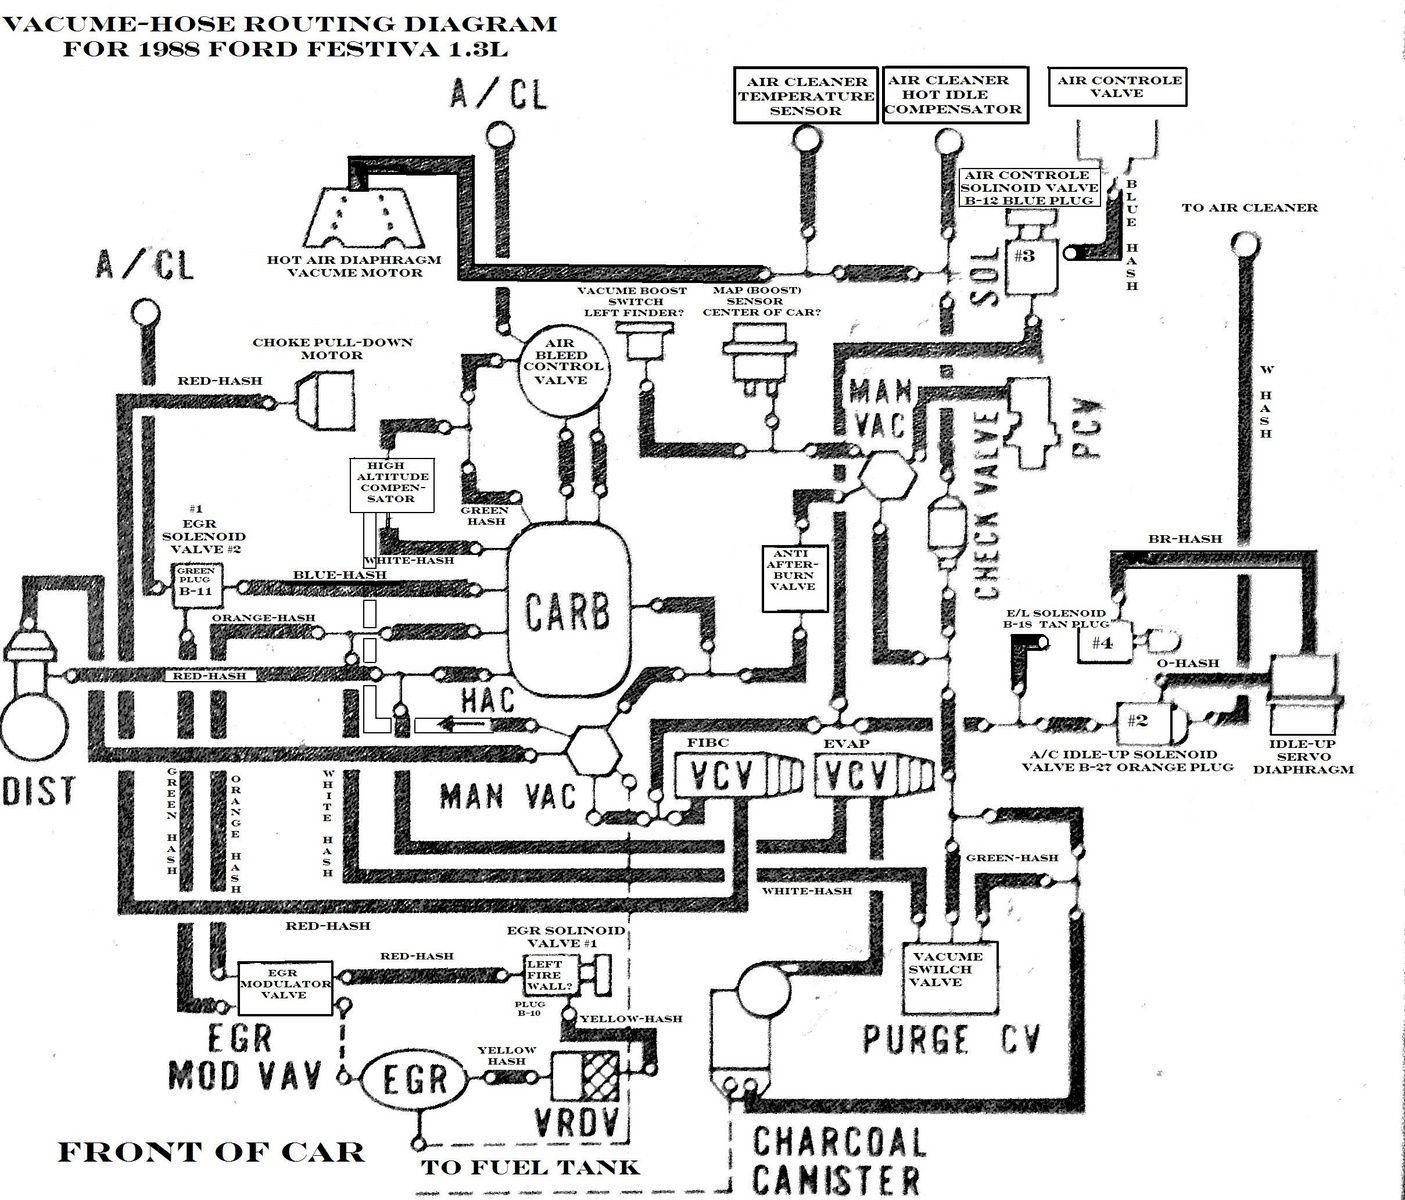 Groovy 1990 F600 Wiring Diagram Wiring Library Wiring Cloud Dulfrecoveryedborg